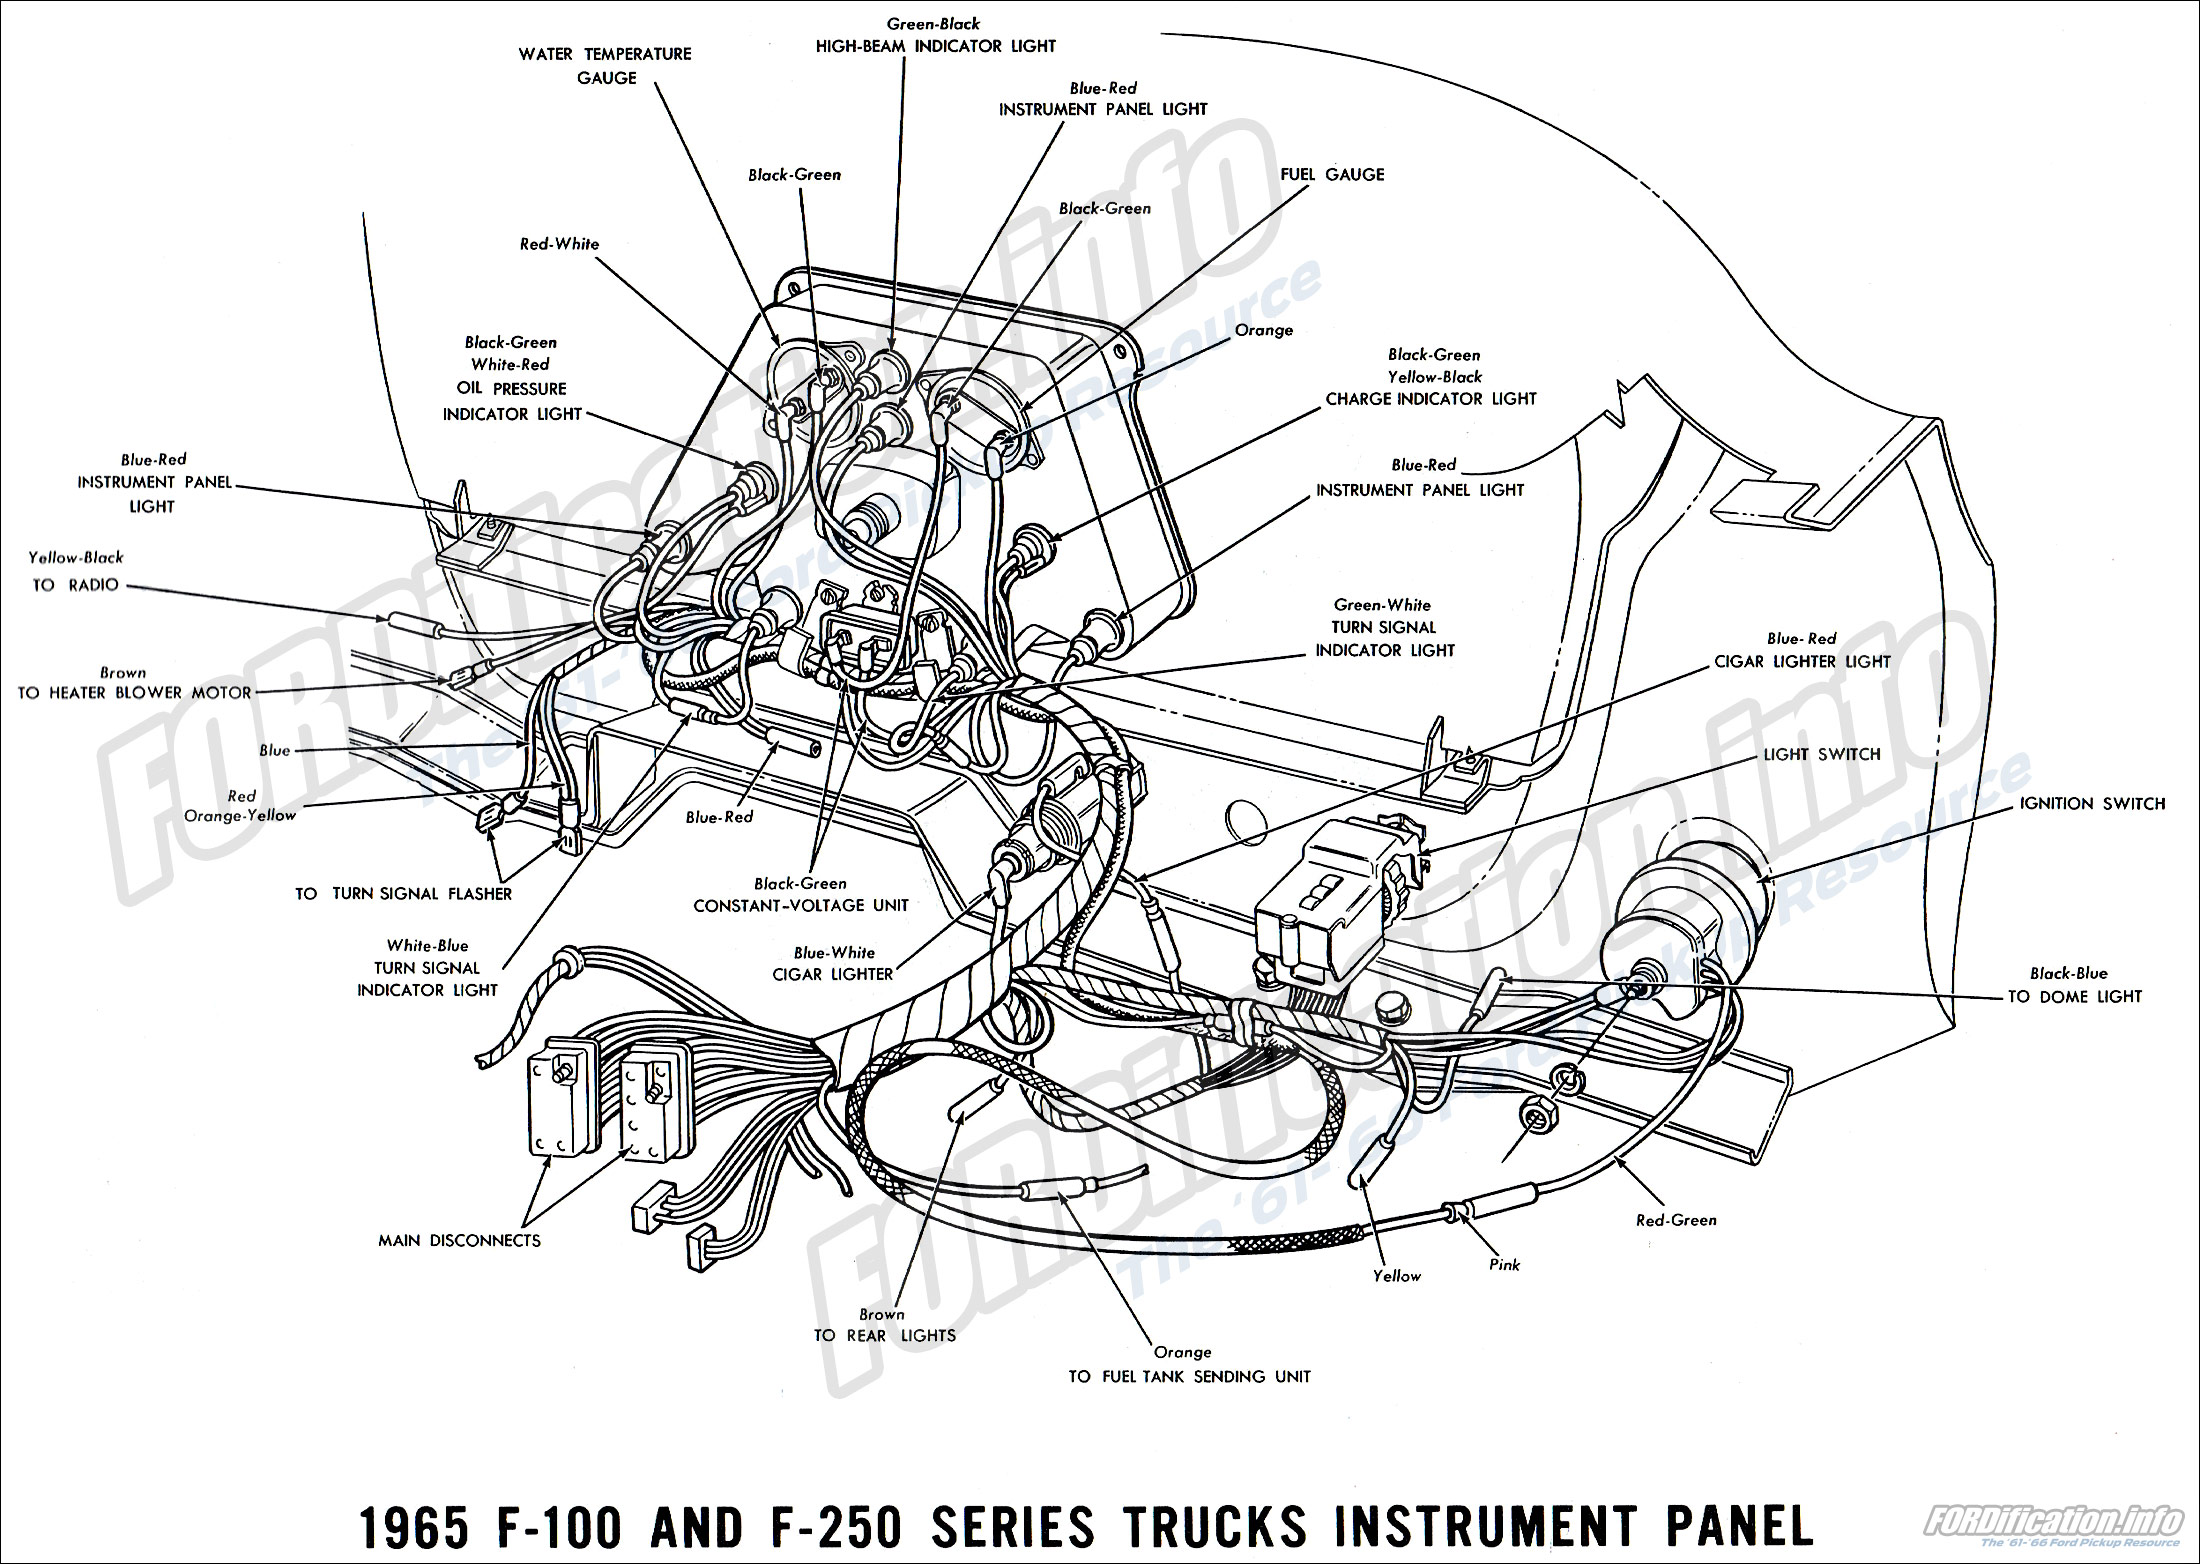 1965 instr panel 1965 ford truck wiring diagrams fordification info the '61 '66 1965 ford f100 dash wiring diagram at gsmx.co